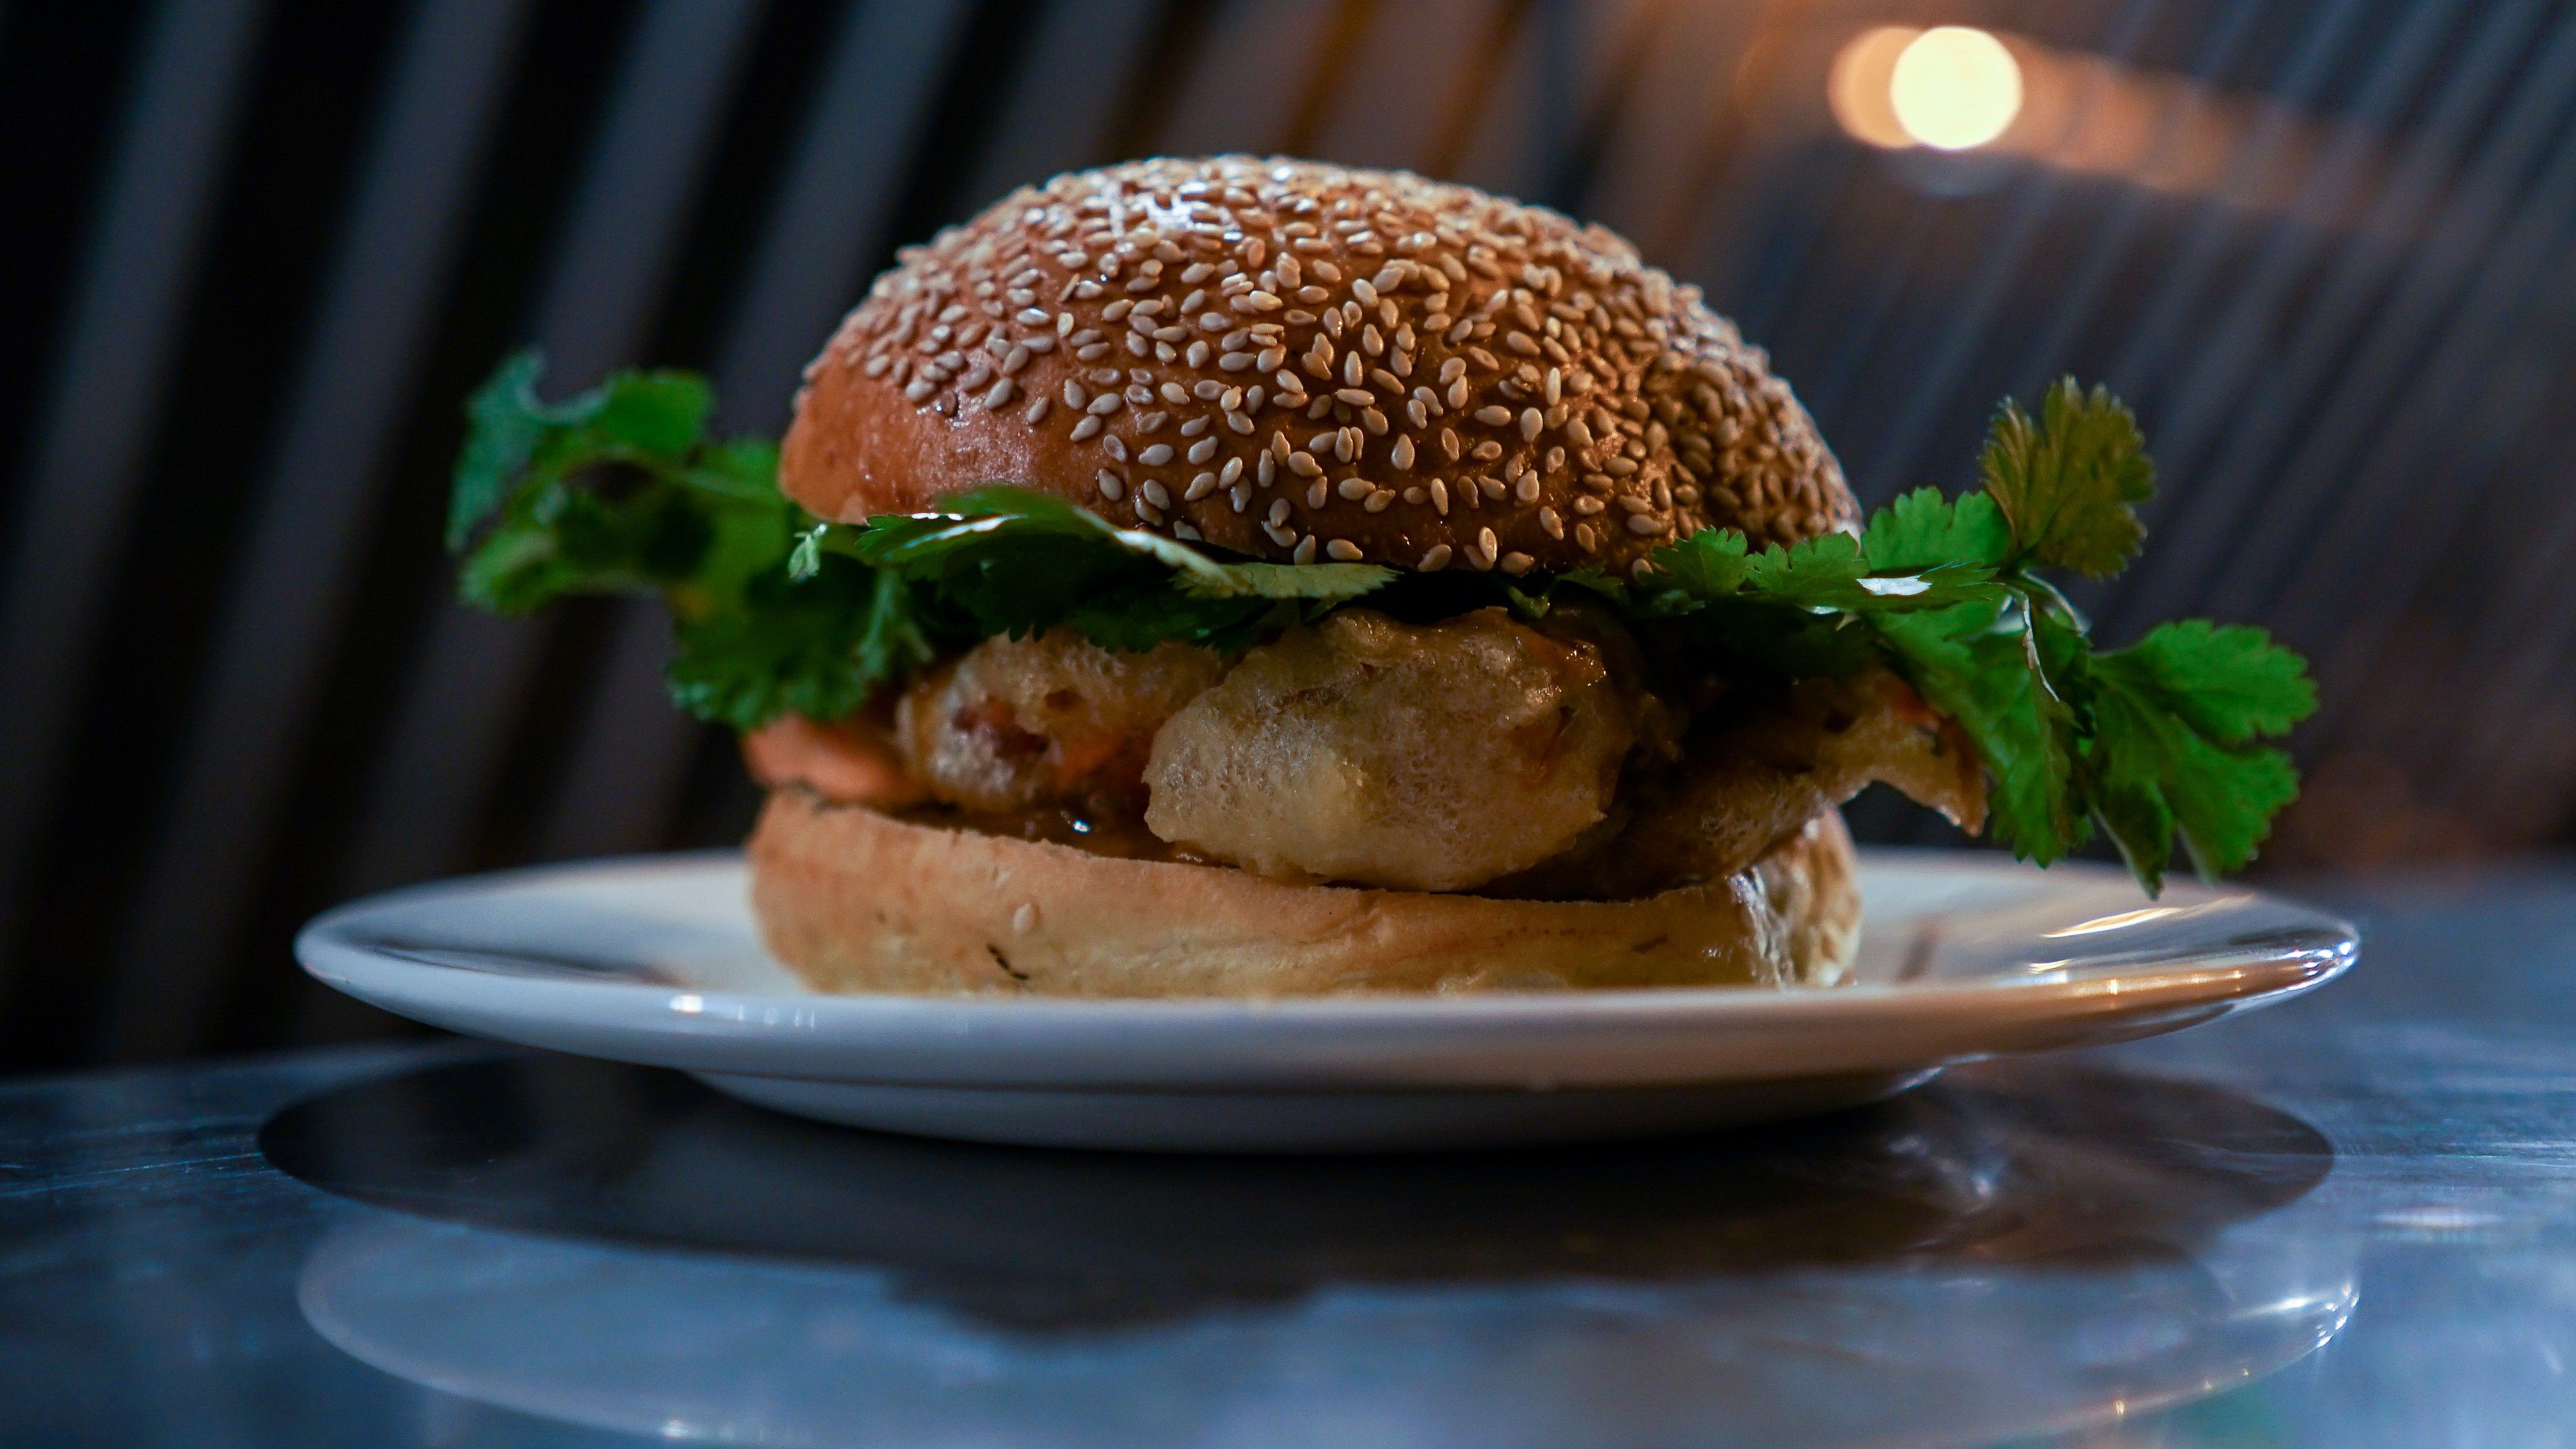 curried-sotf-shell-crab-burger1